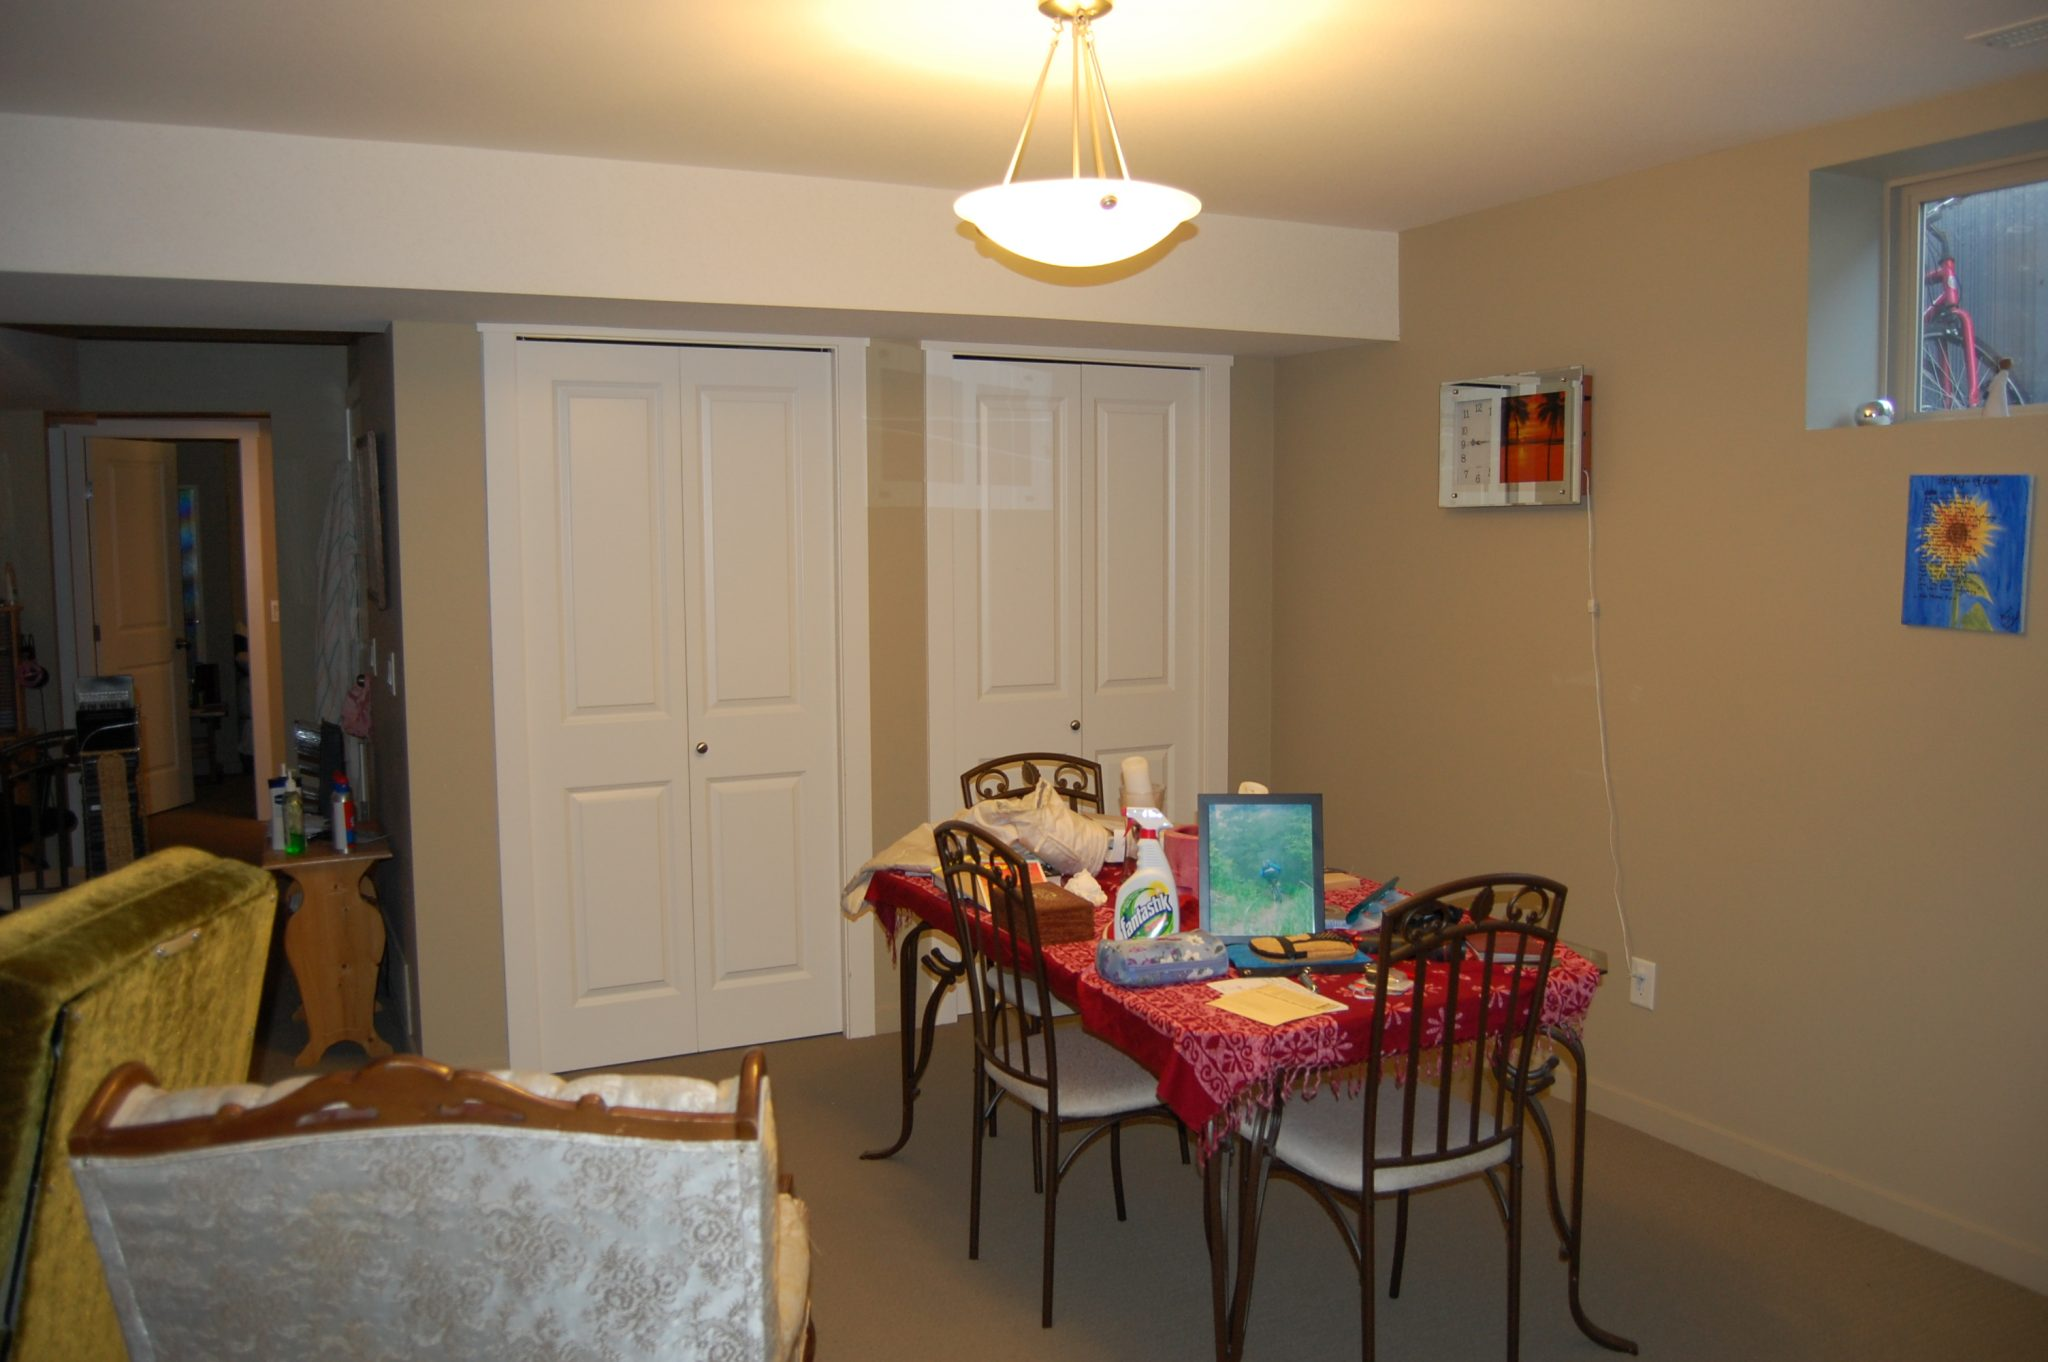 Interior Design Kelowna - Creative Touch - dining area before renovation